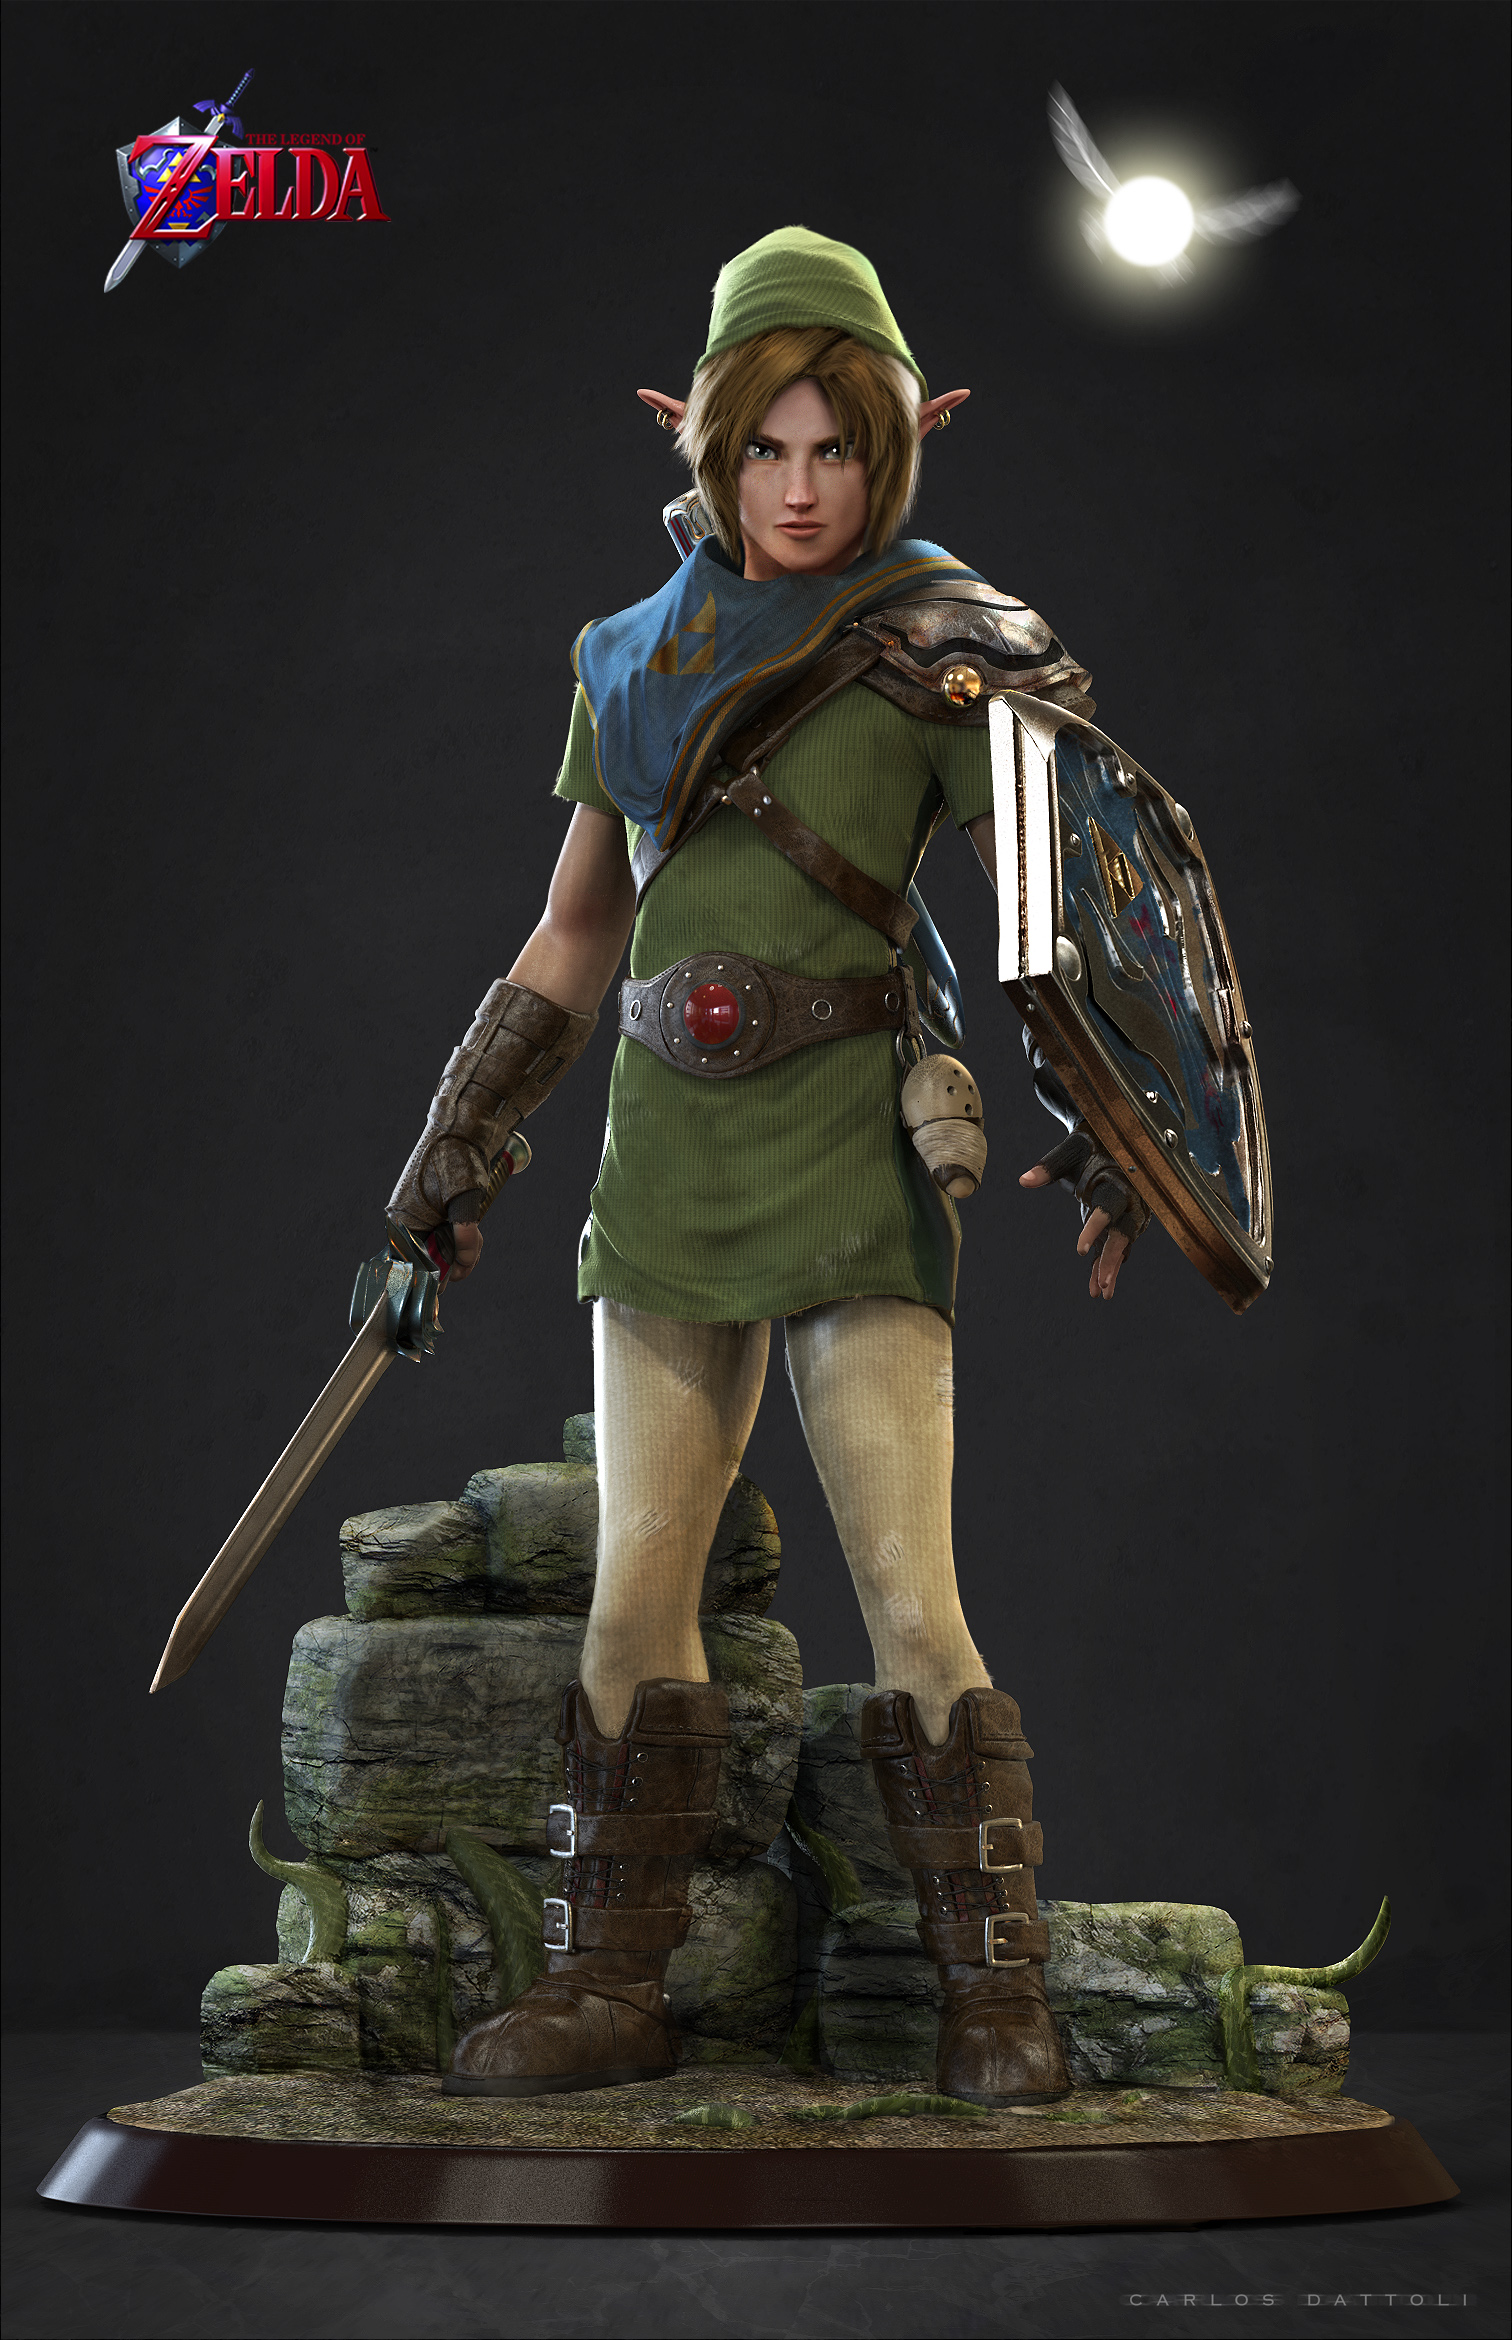 LINK by CarlosDattoliArt